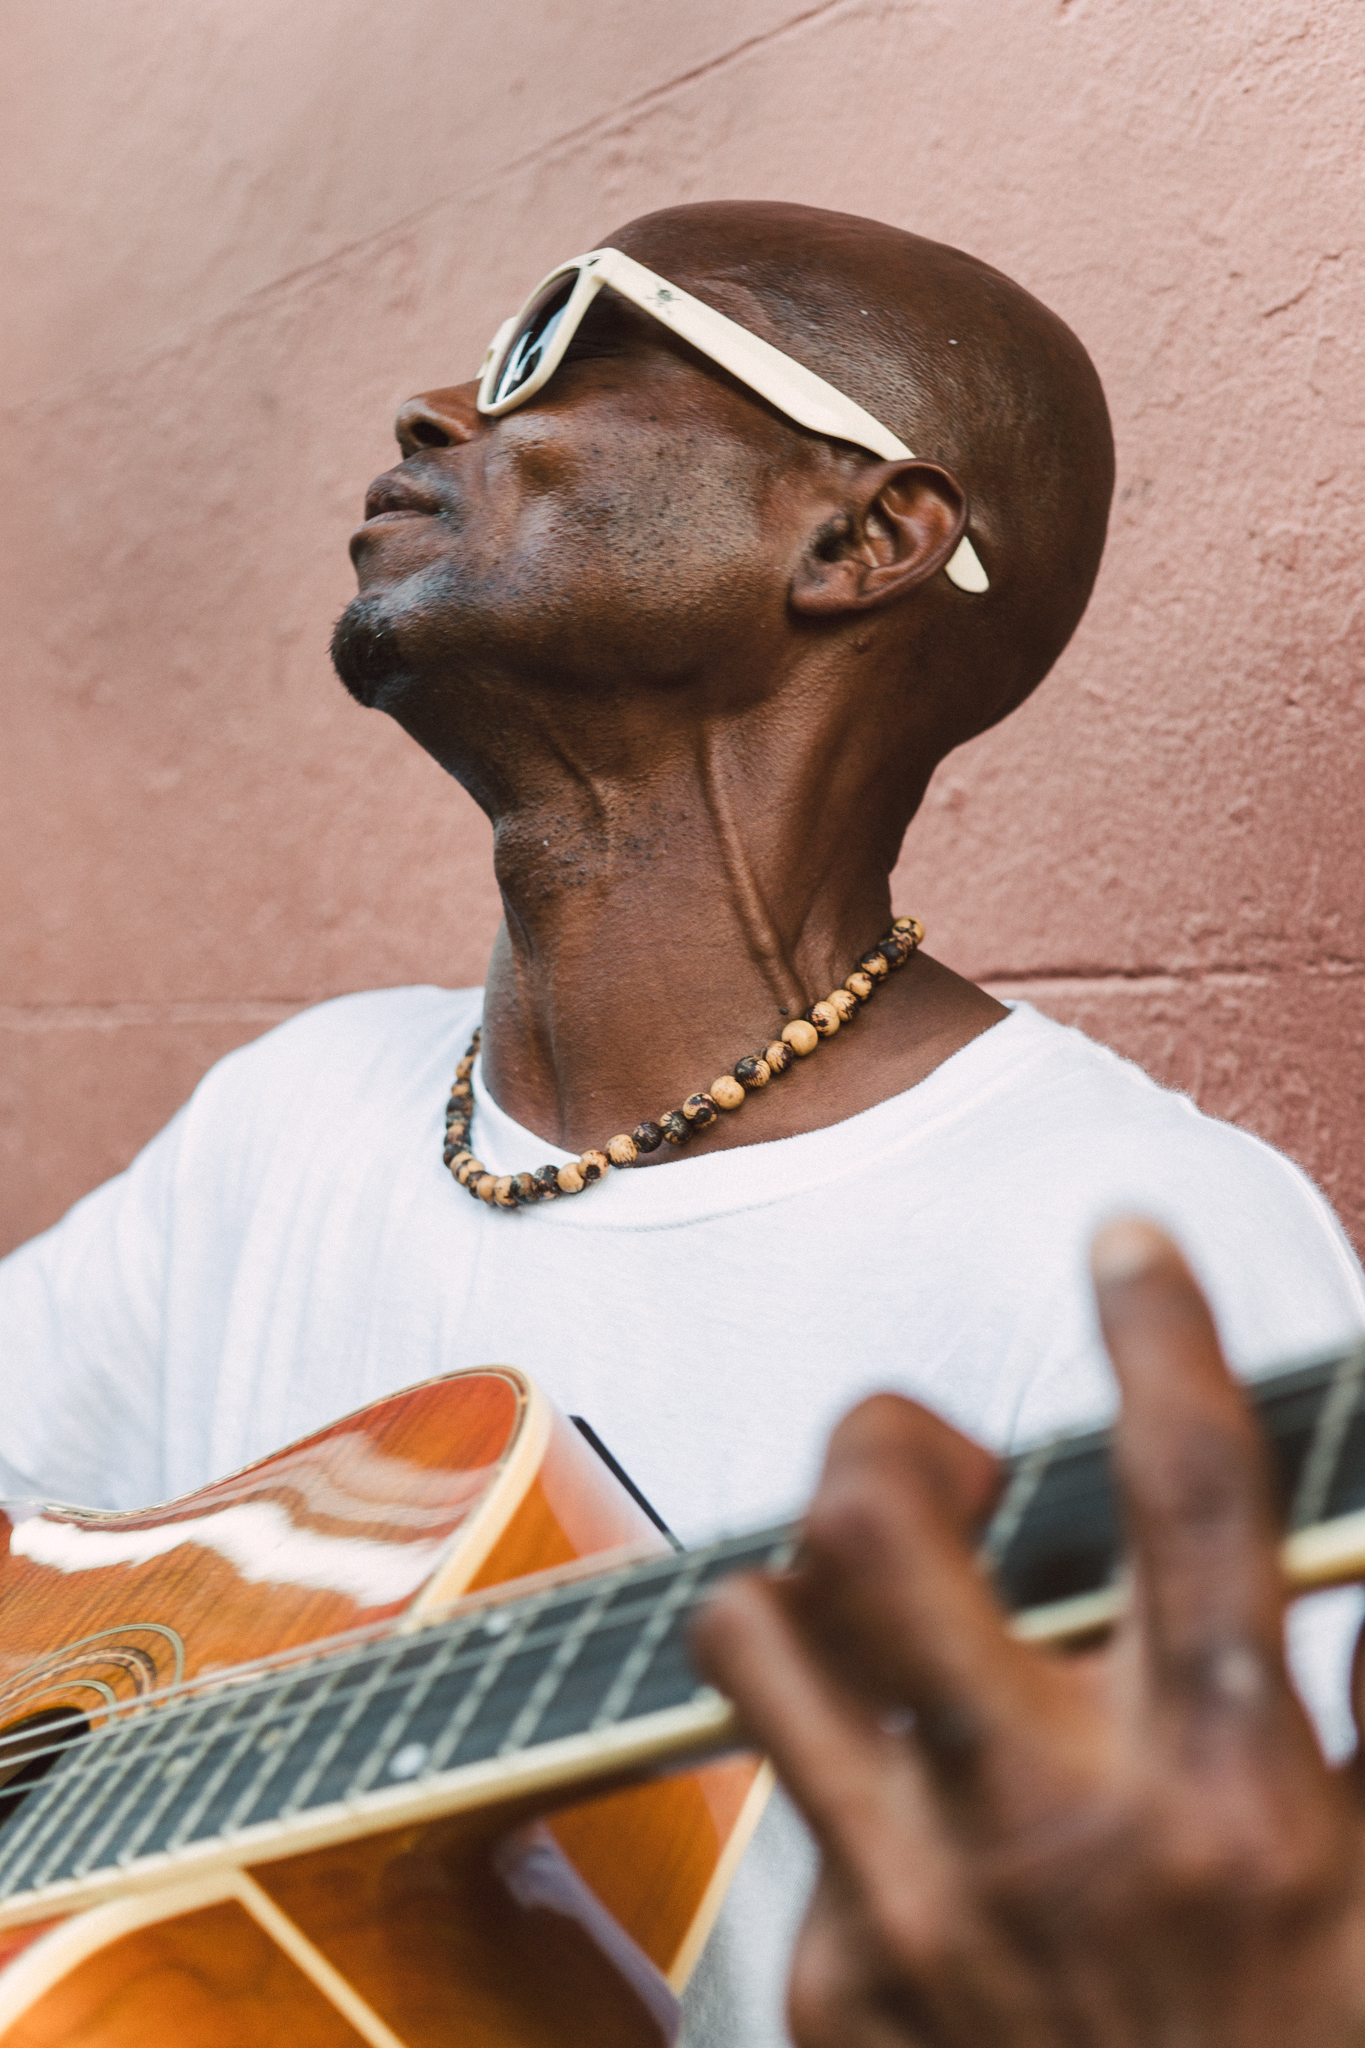 A street musician playing in the French Quarter.